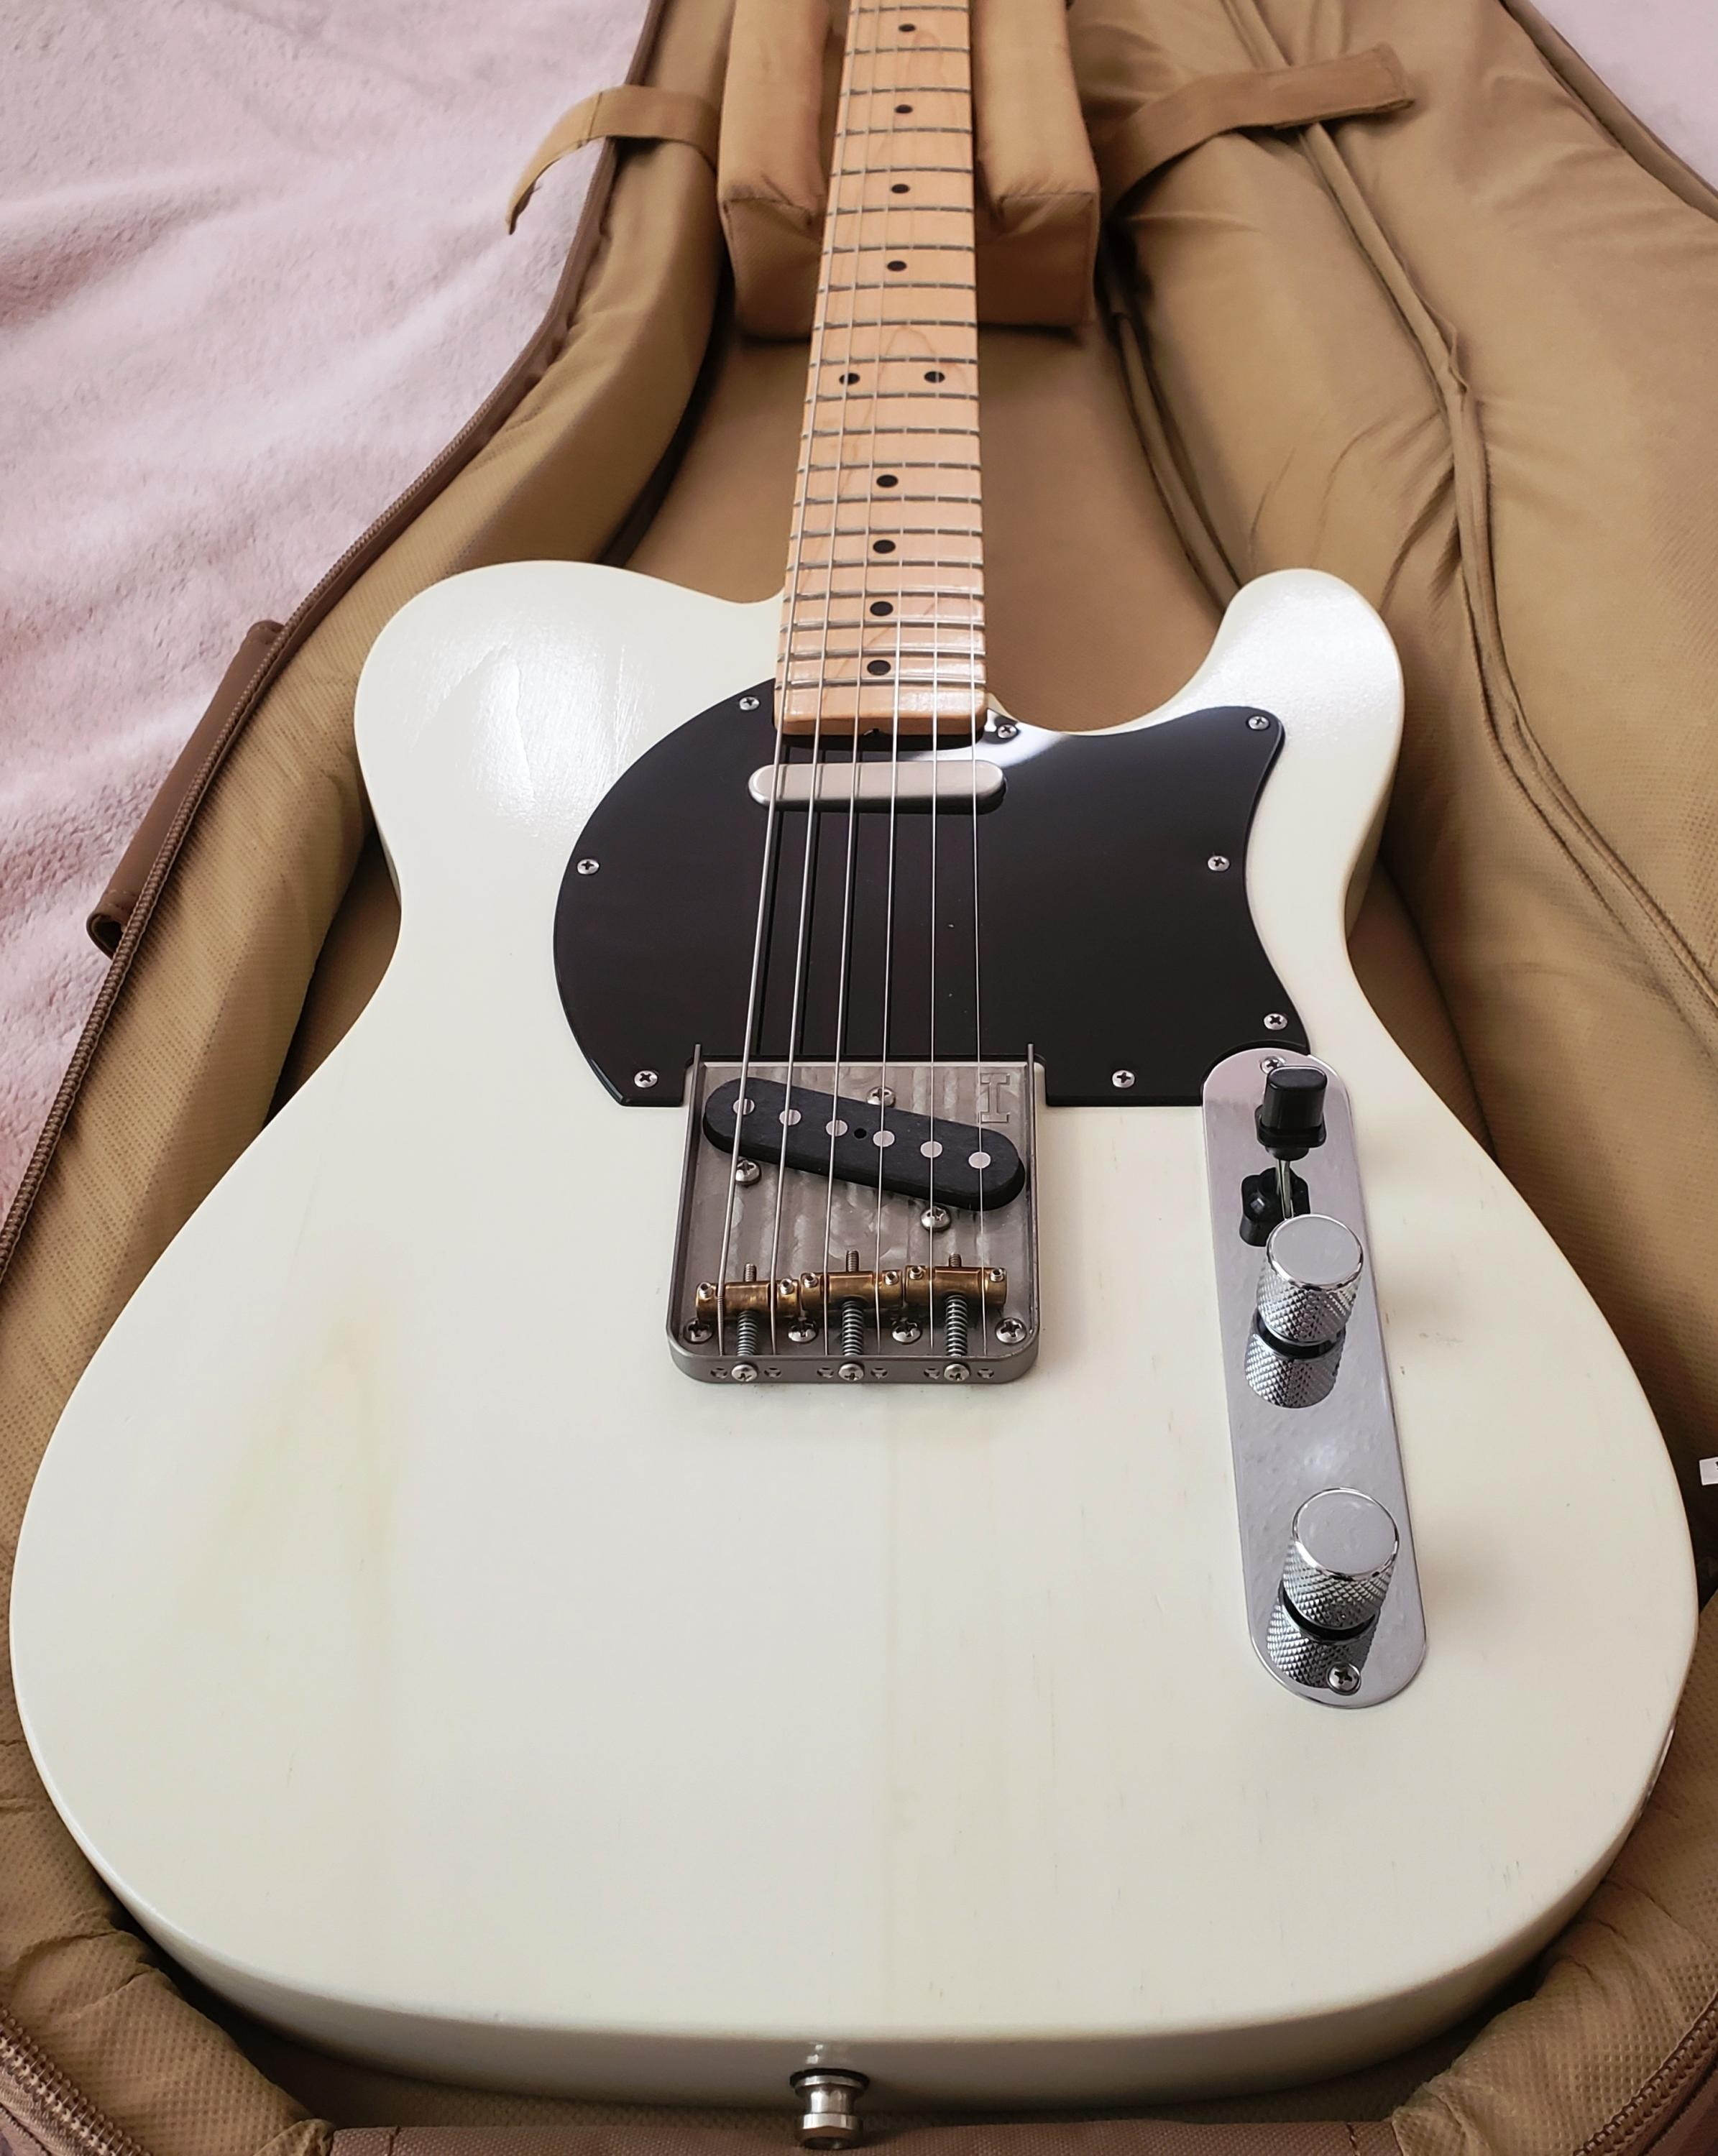 Telecaster Love Thread, No Archtops Allowed-20210116_161752-jpg